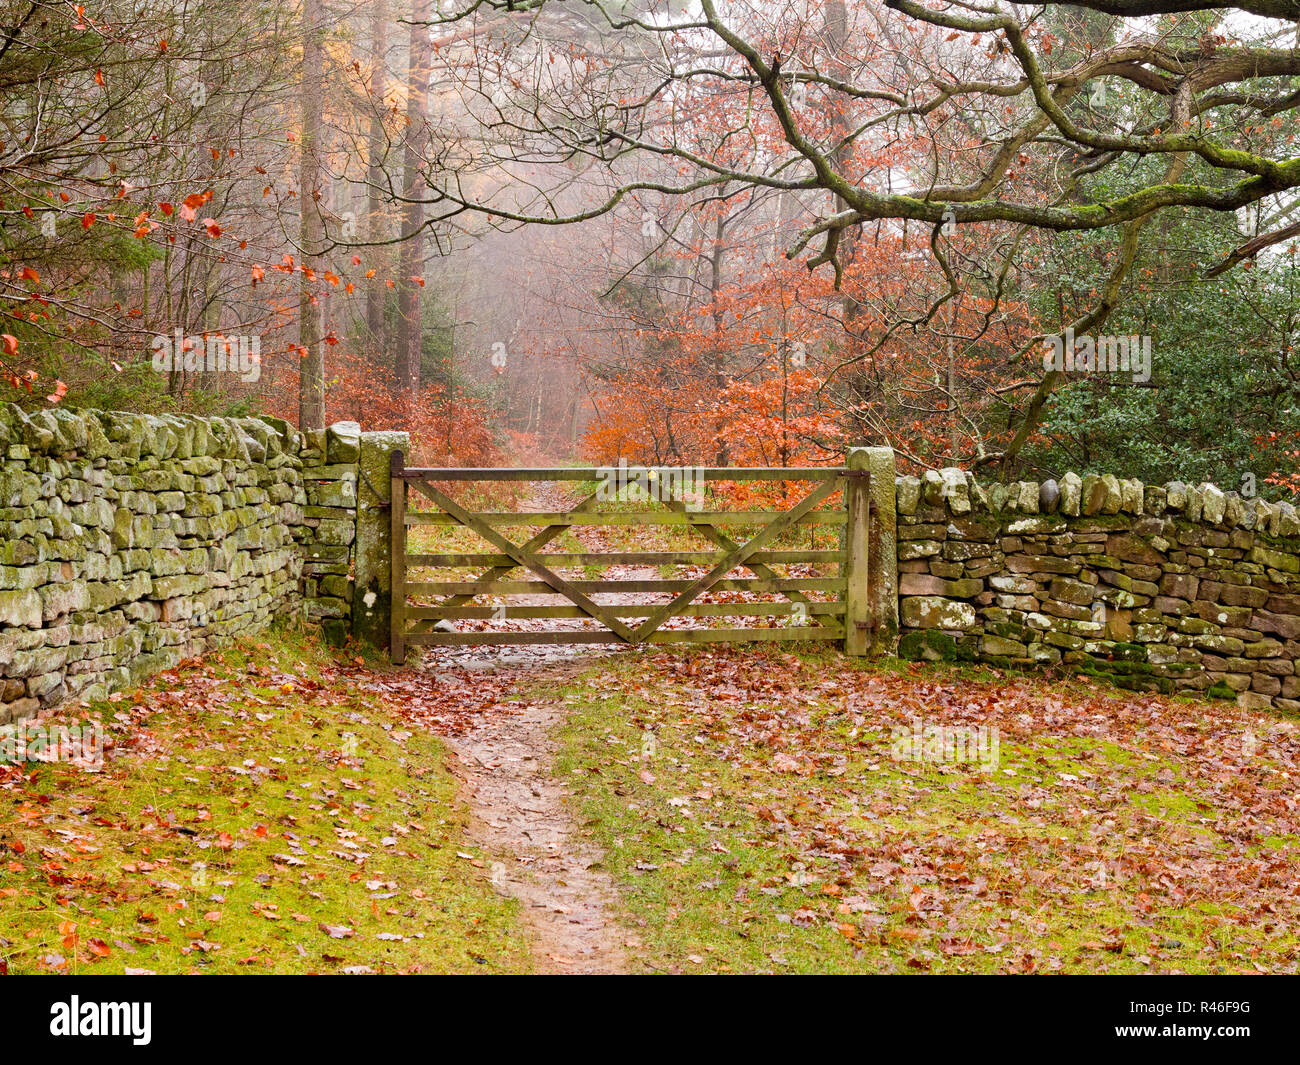 Autumn woodland scene from along the Teesdale way following the river Tees in Barnard Castle County Durham England UK - Stock Image